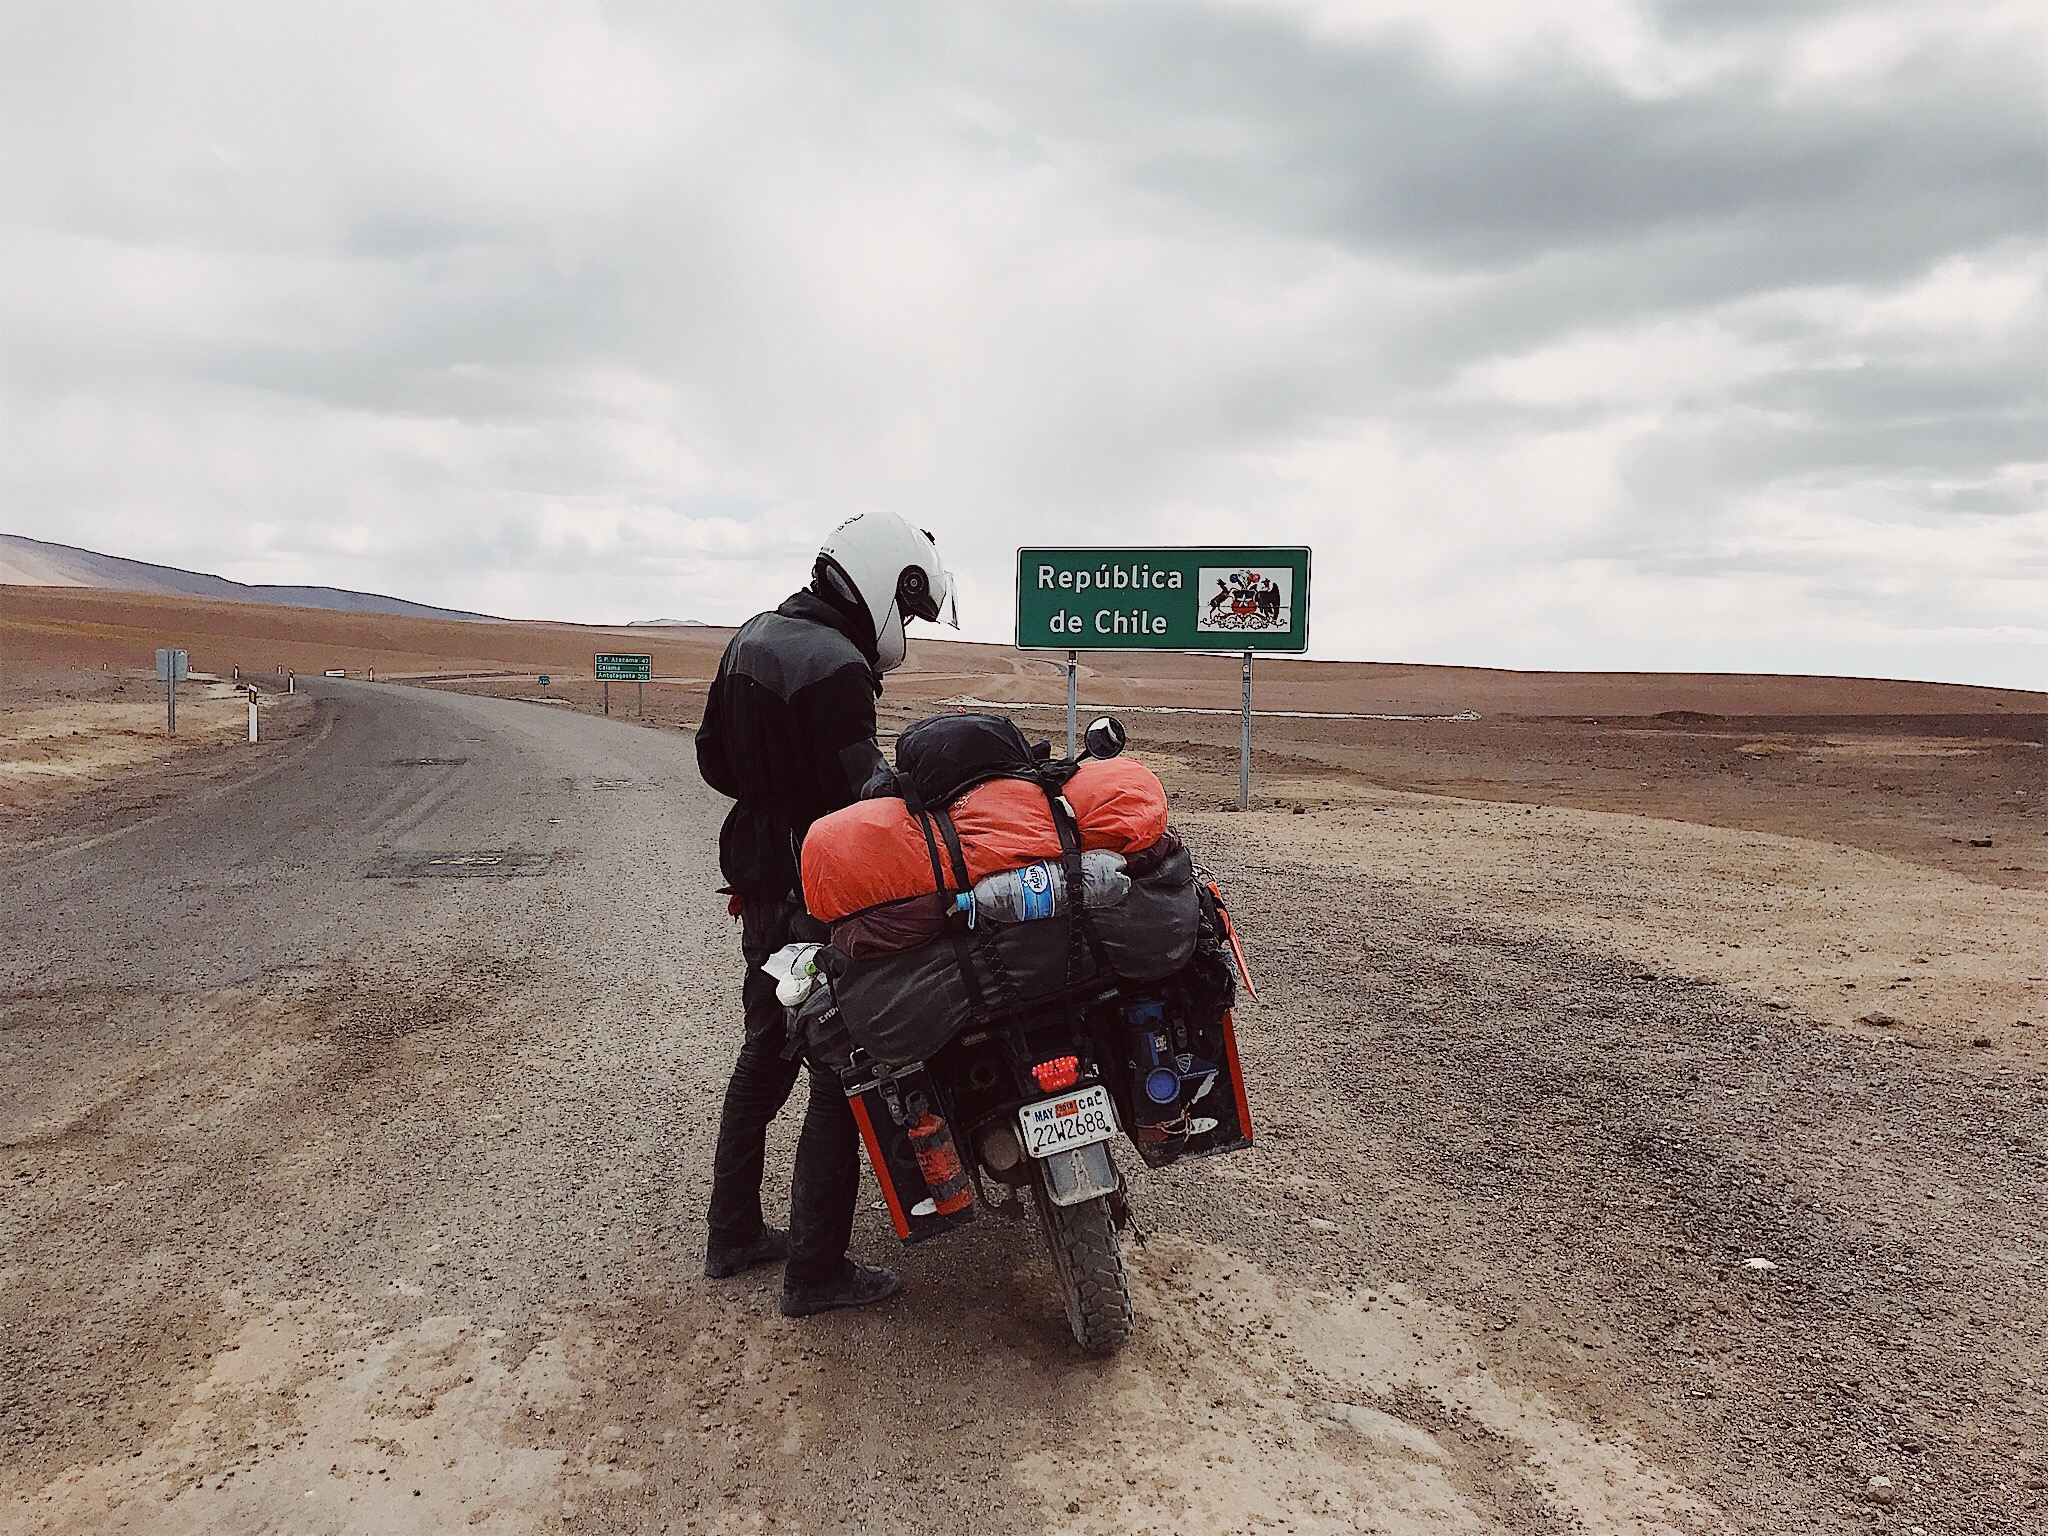 Gravel meets asphalt at the border between Bolivia and Chile. By Diana Juárez.